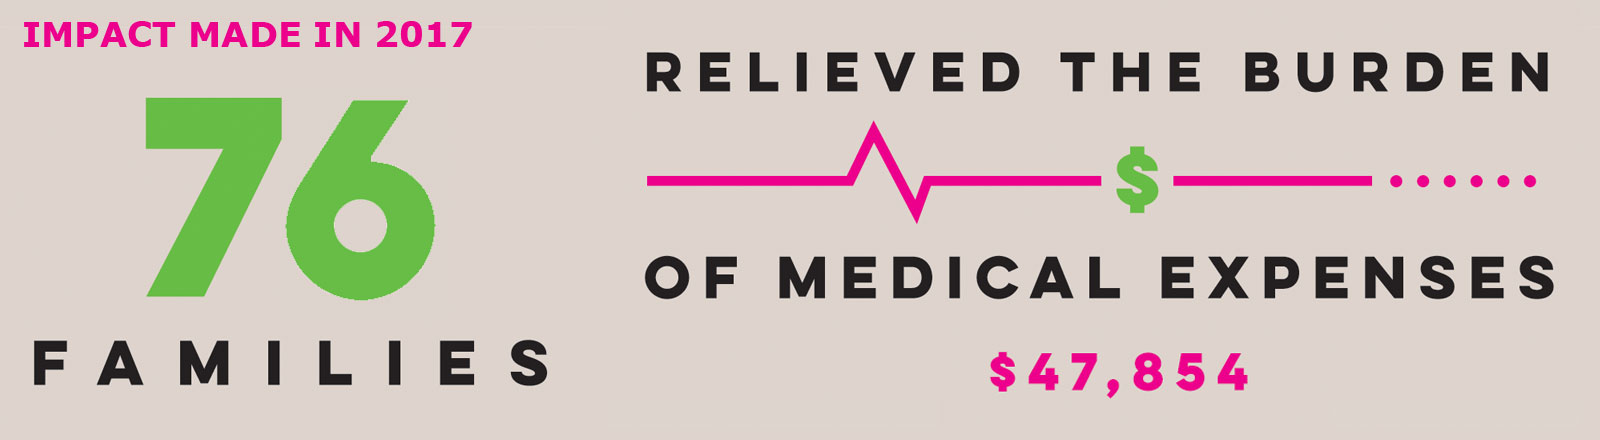 slide 2017 Impact Medical Expenses 76families